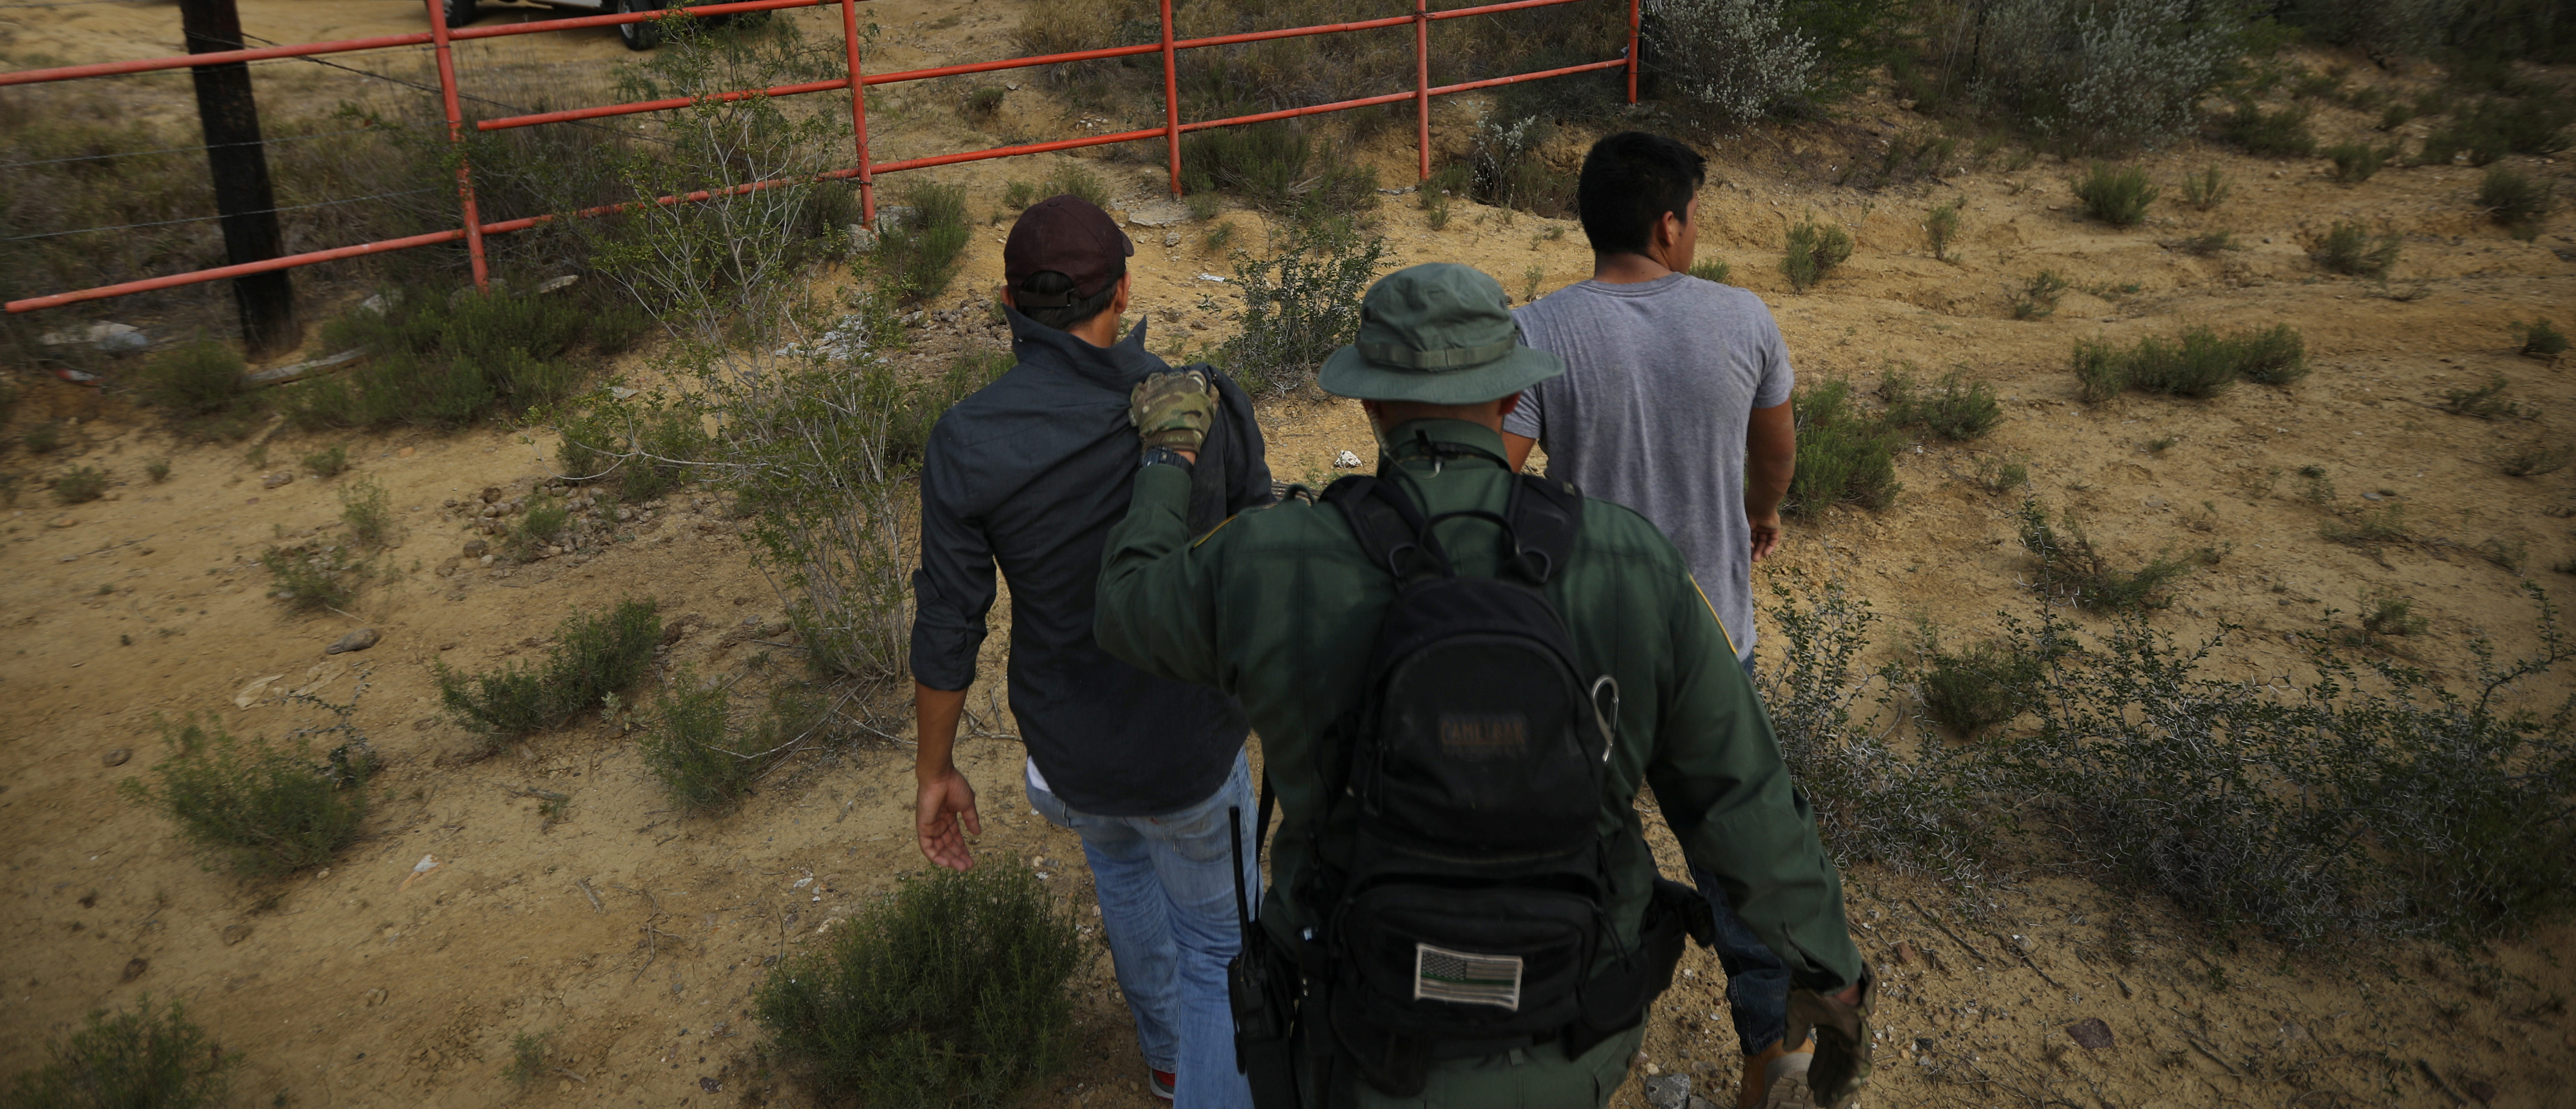 A U.S. border patrol agent escorts men being detained after entering the United States by crossing the Rio Grande river from Mexico, in Roma, Texas, U.S., May 11, 2017. REUTERS/Carlos Barria